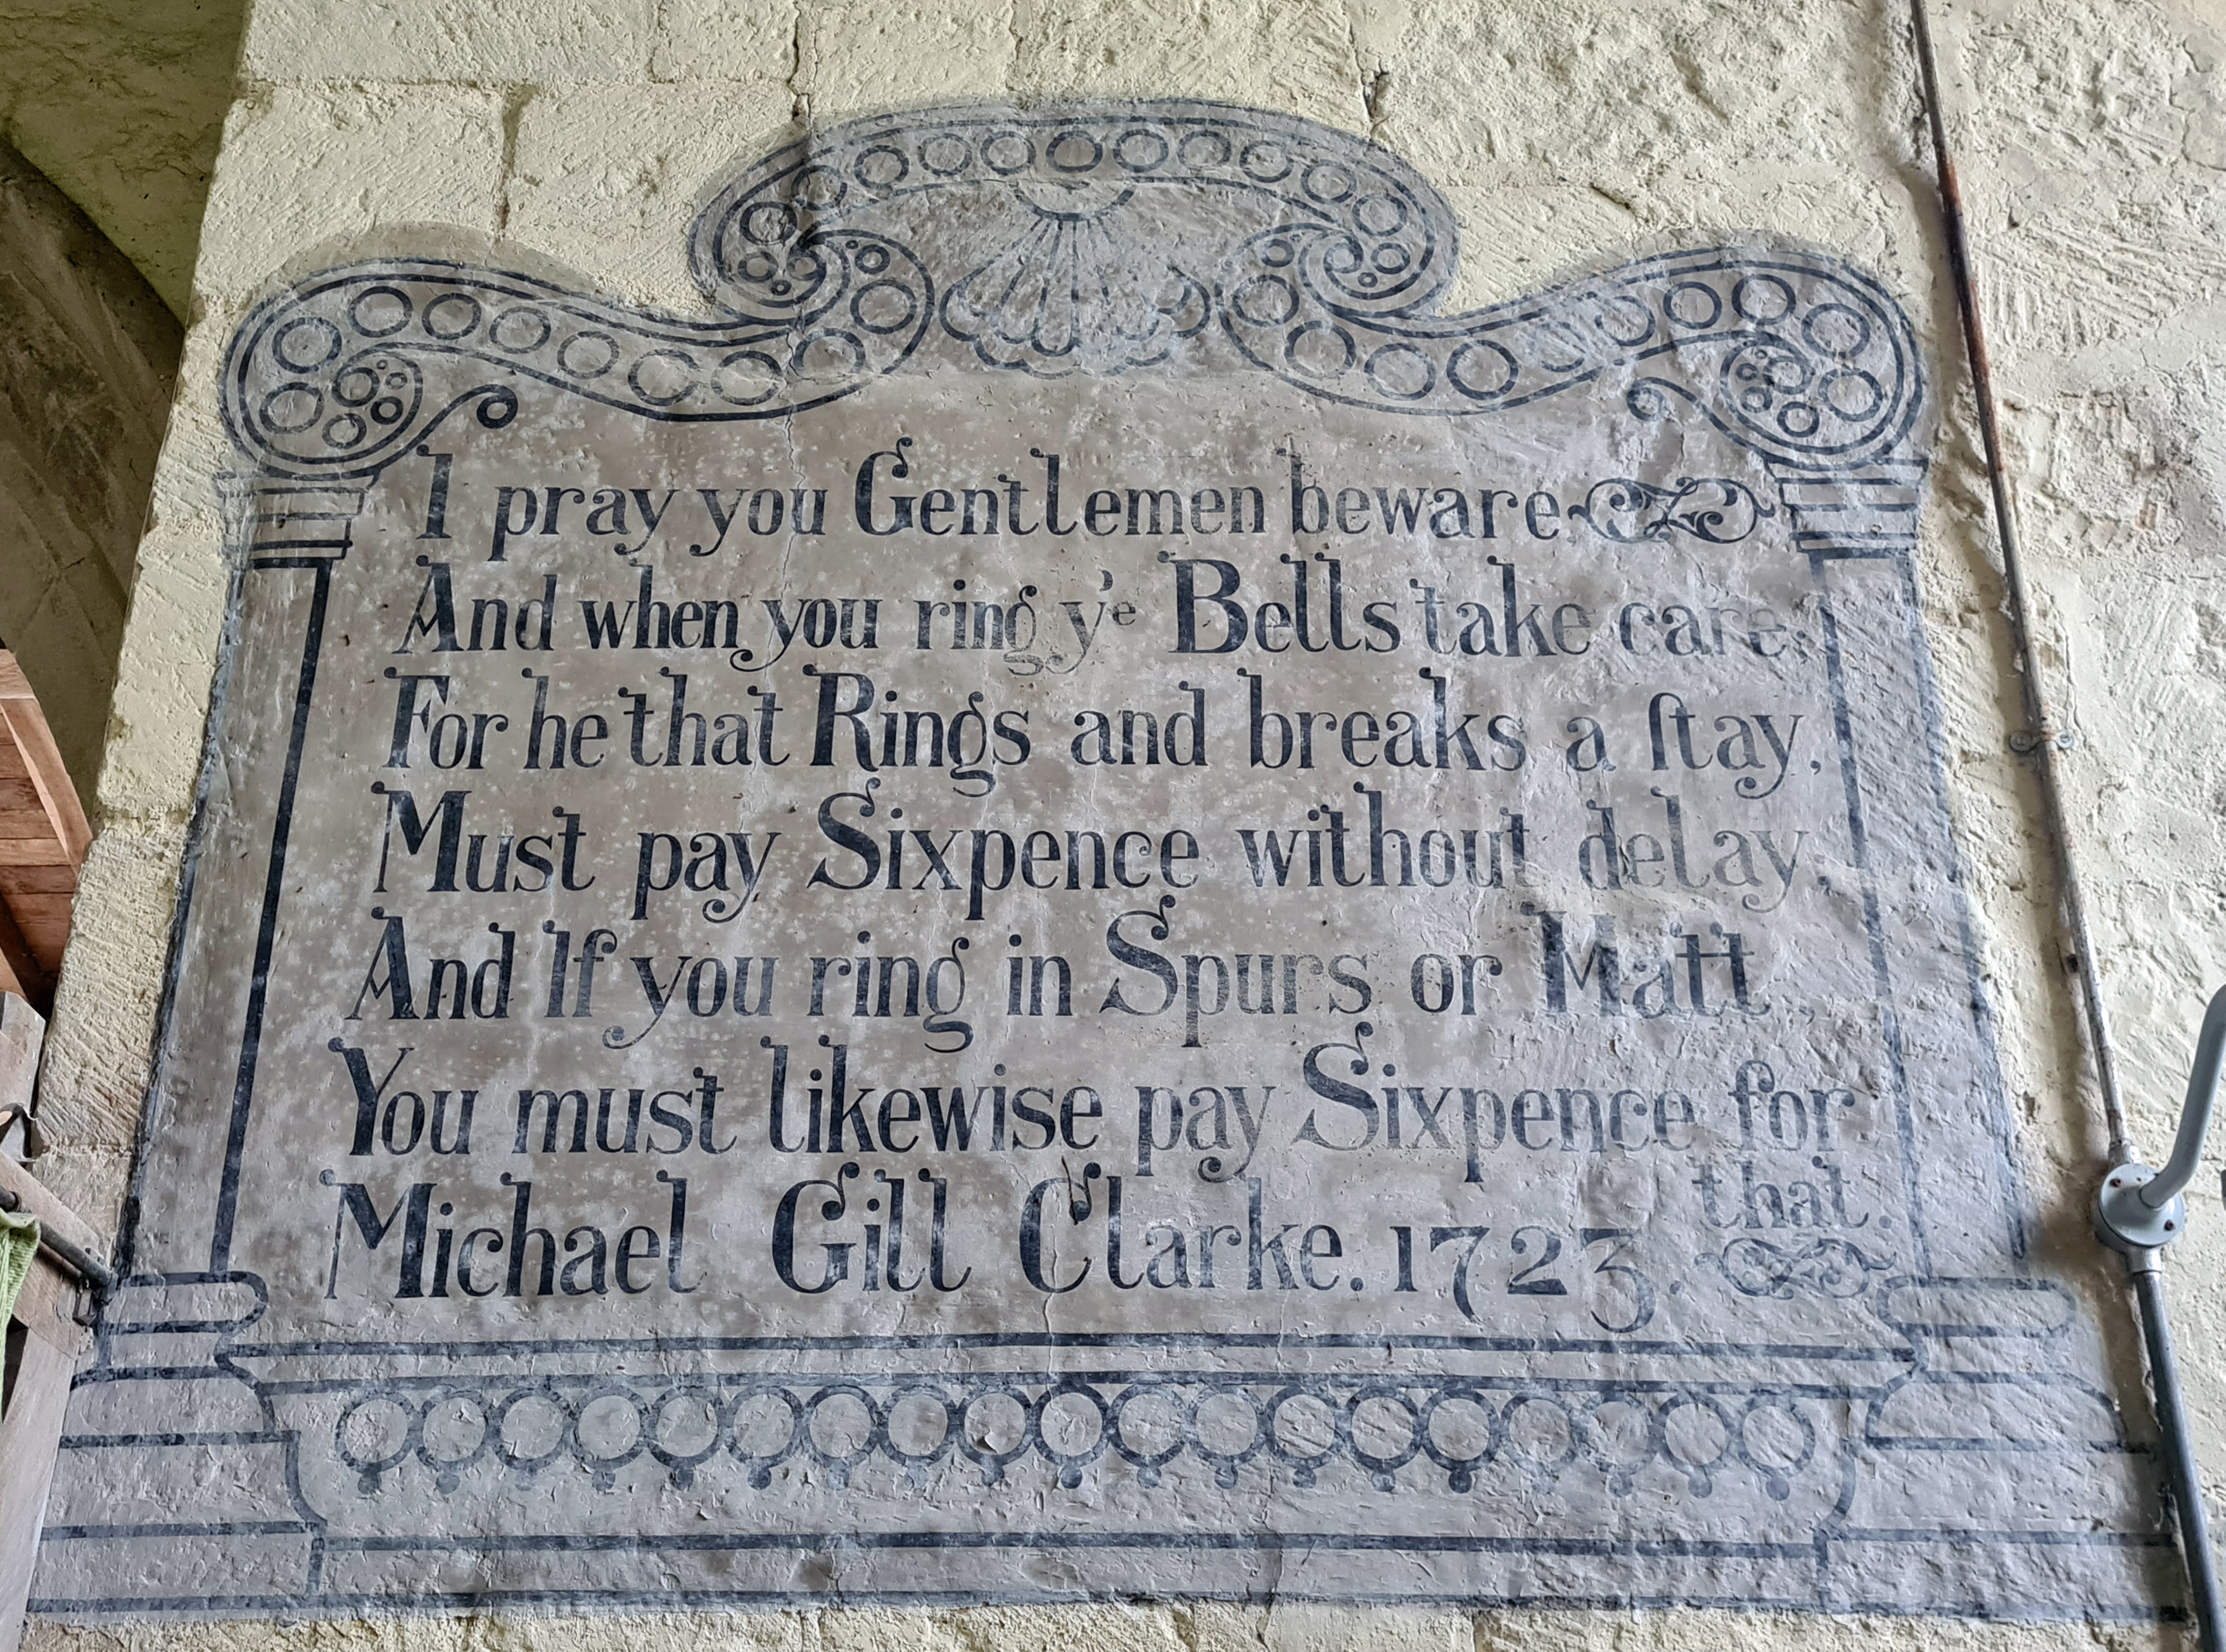 A warning to bell ringers at Wintringham church, dated 1723